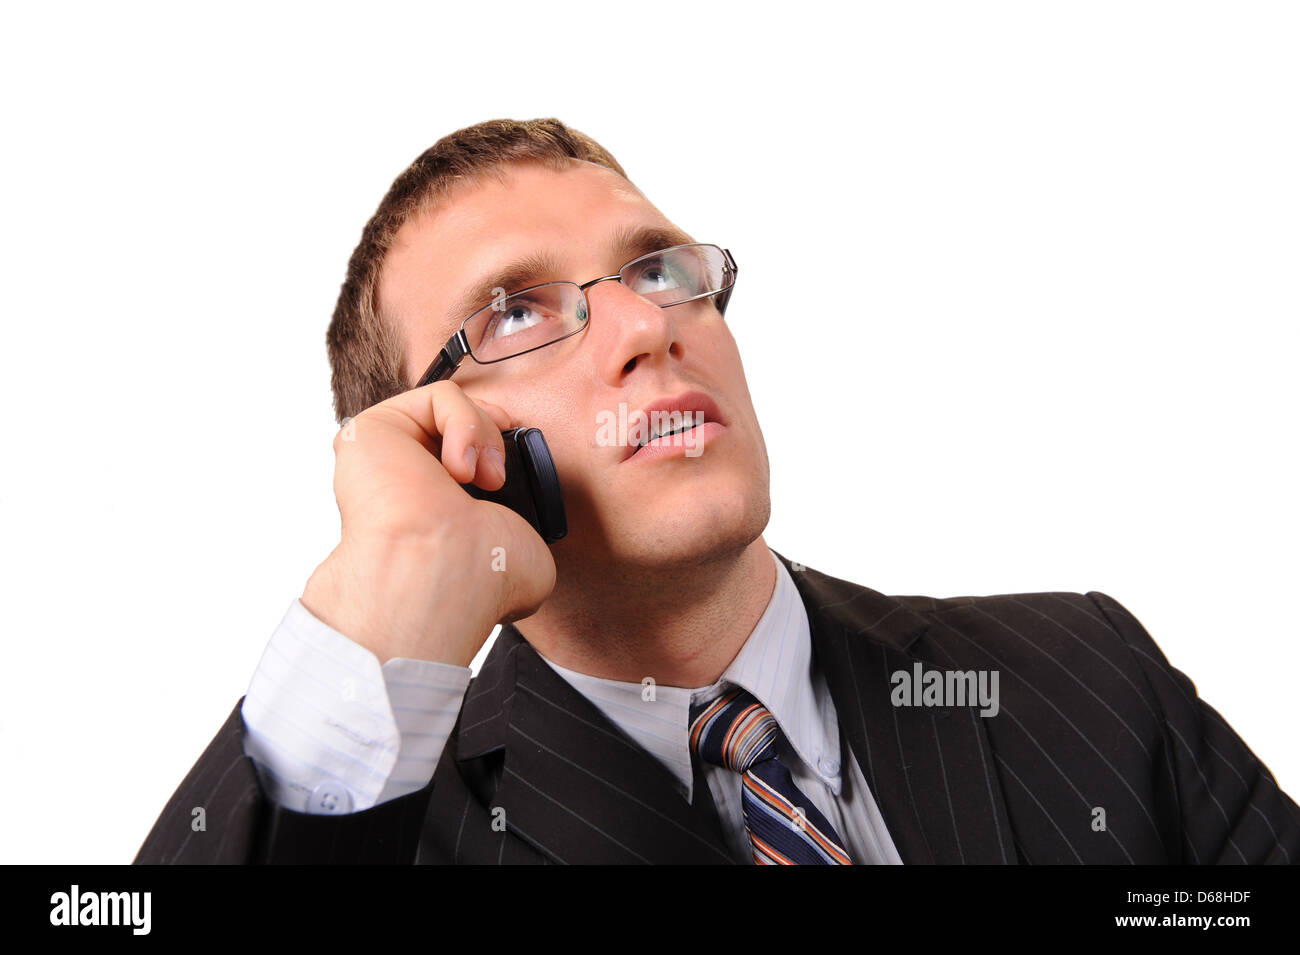 Making a business call on mobile - Stock Image